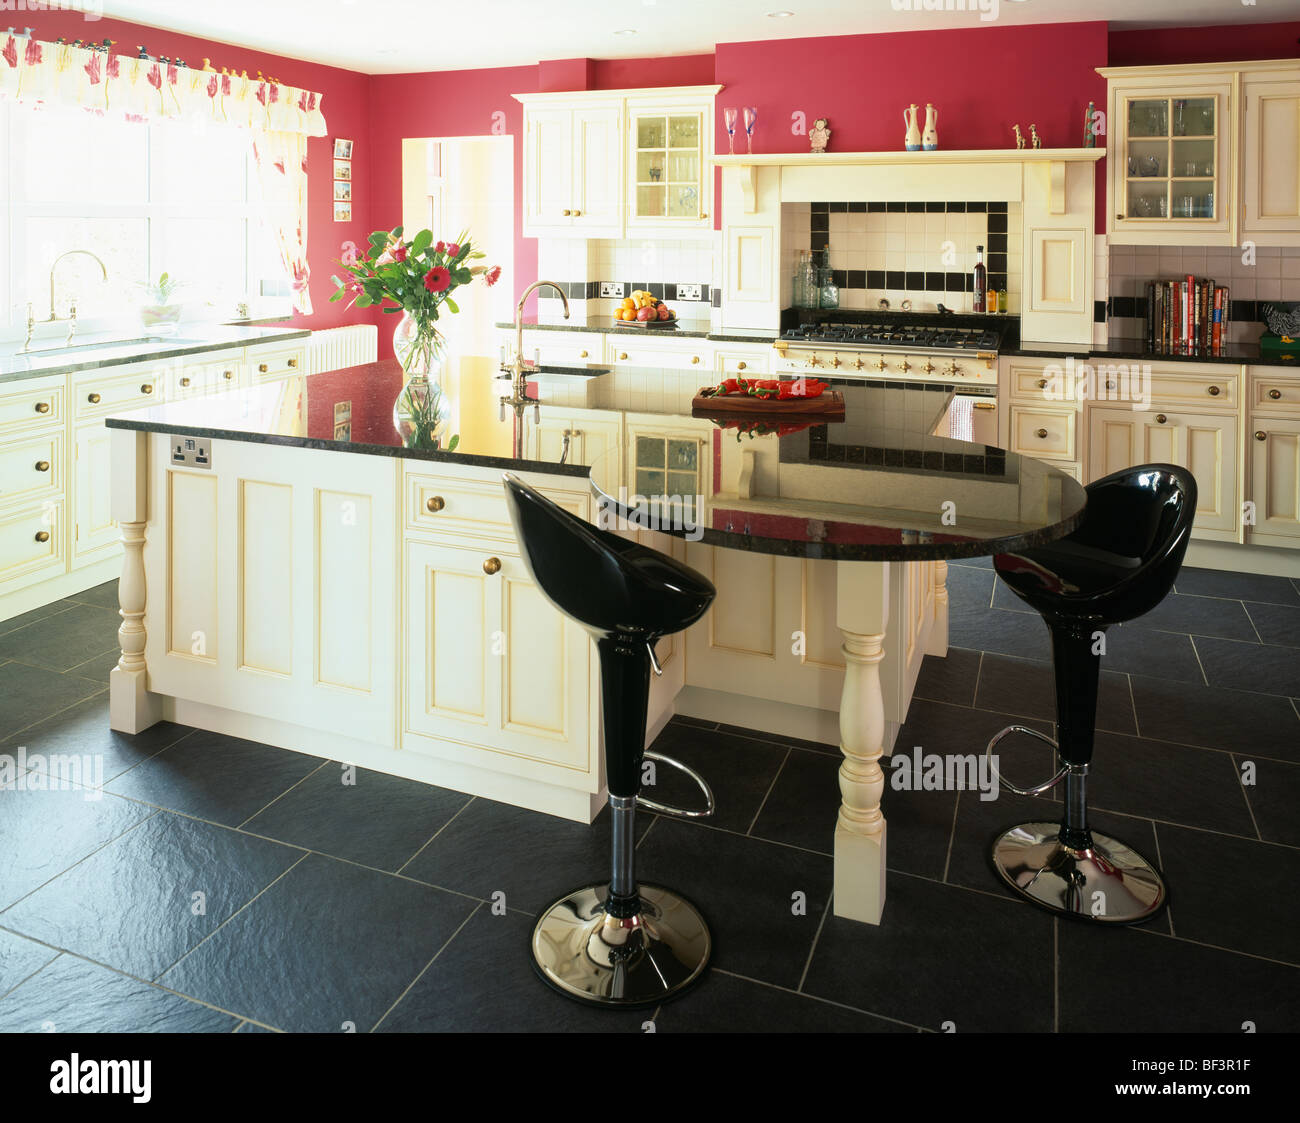 Black Bombo stools at curved breakfast bar in red kitchen ...